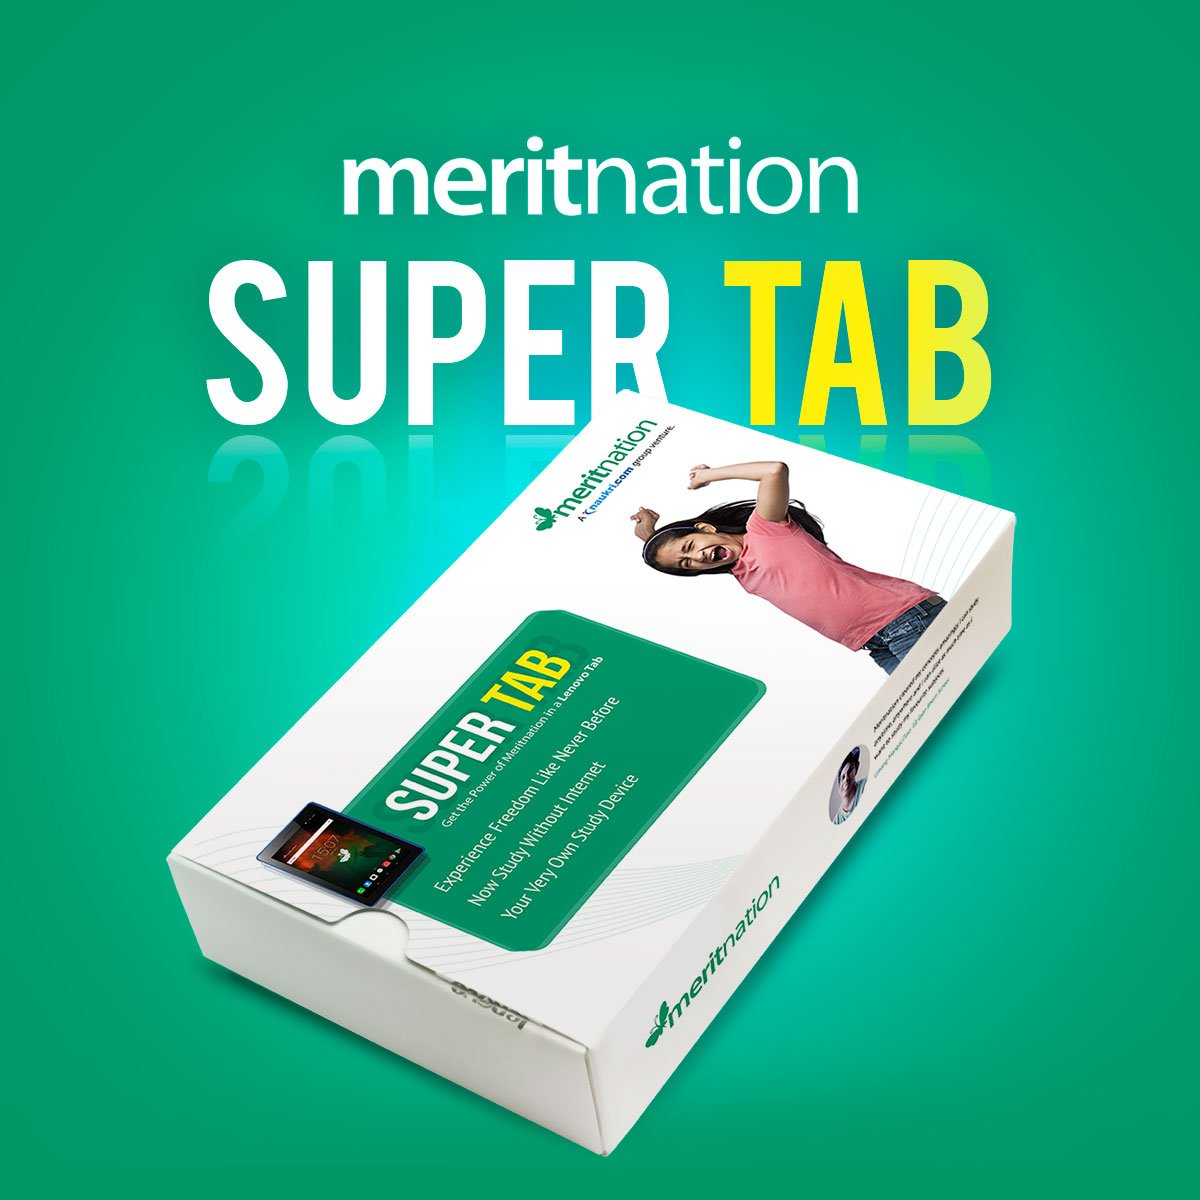 Meritnation SuperTab for CBSE Class 9: Amazon.in: Software